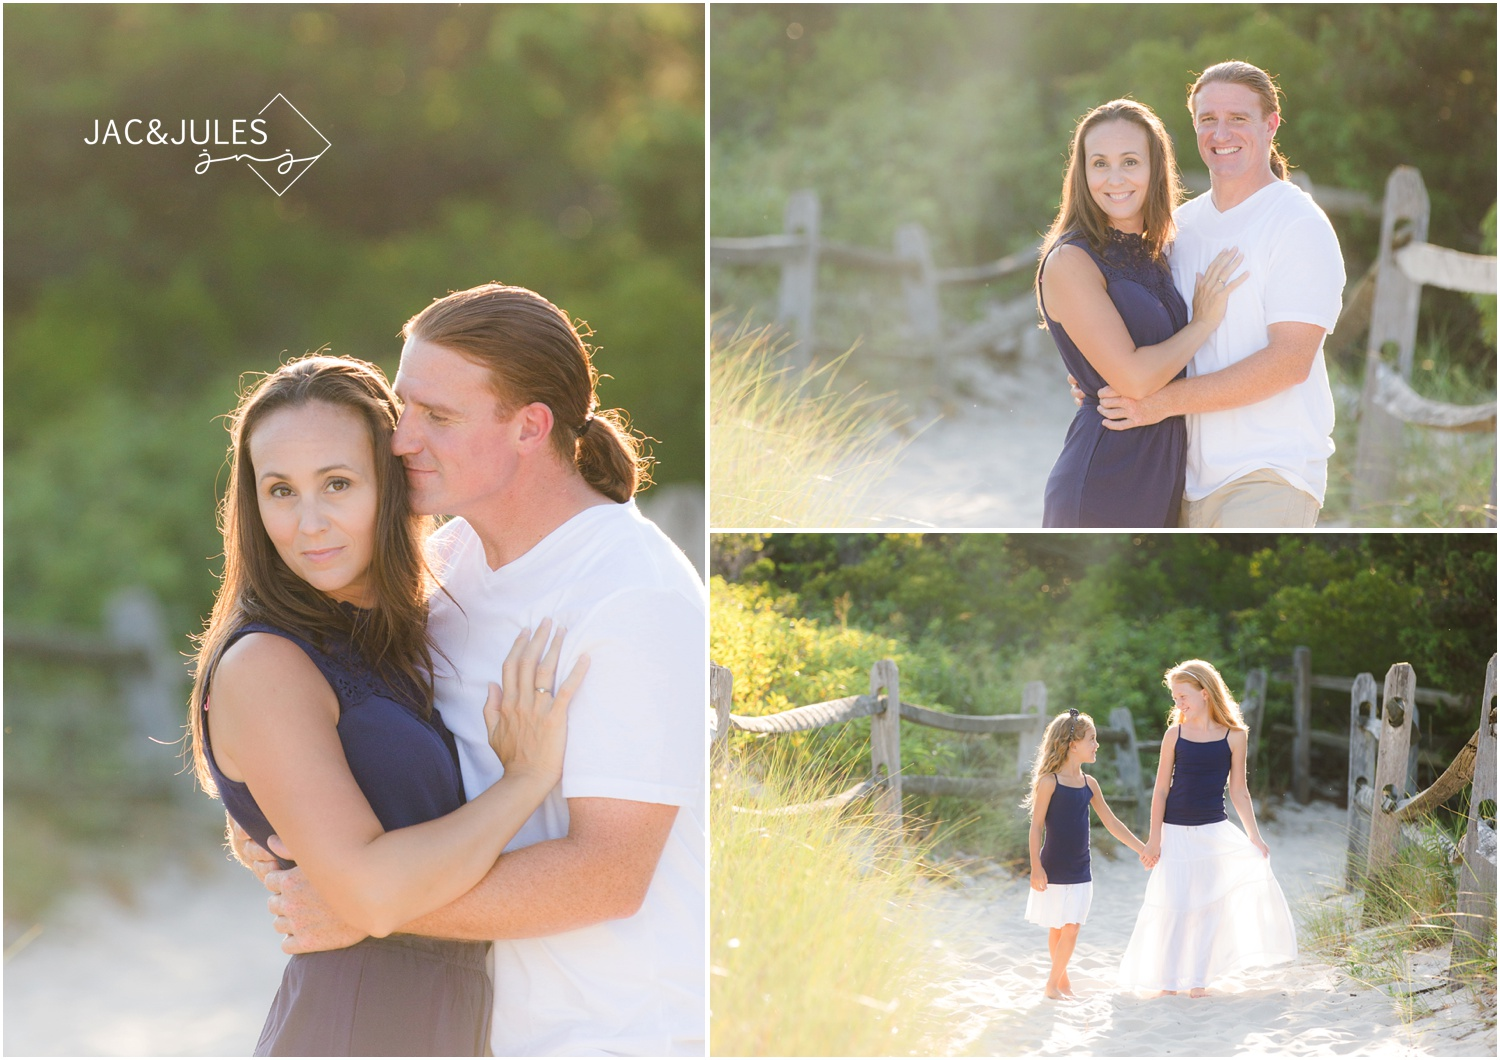 gorgeous Family Photos in Seaside Park, NJ